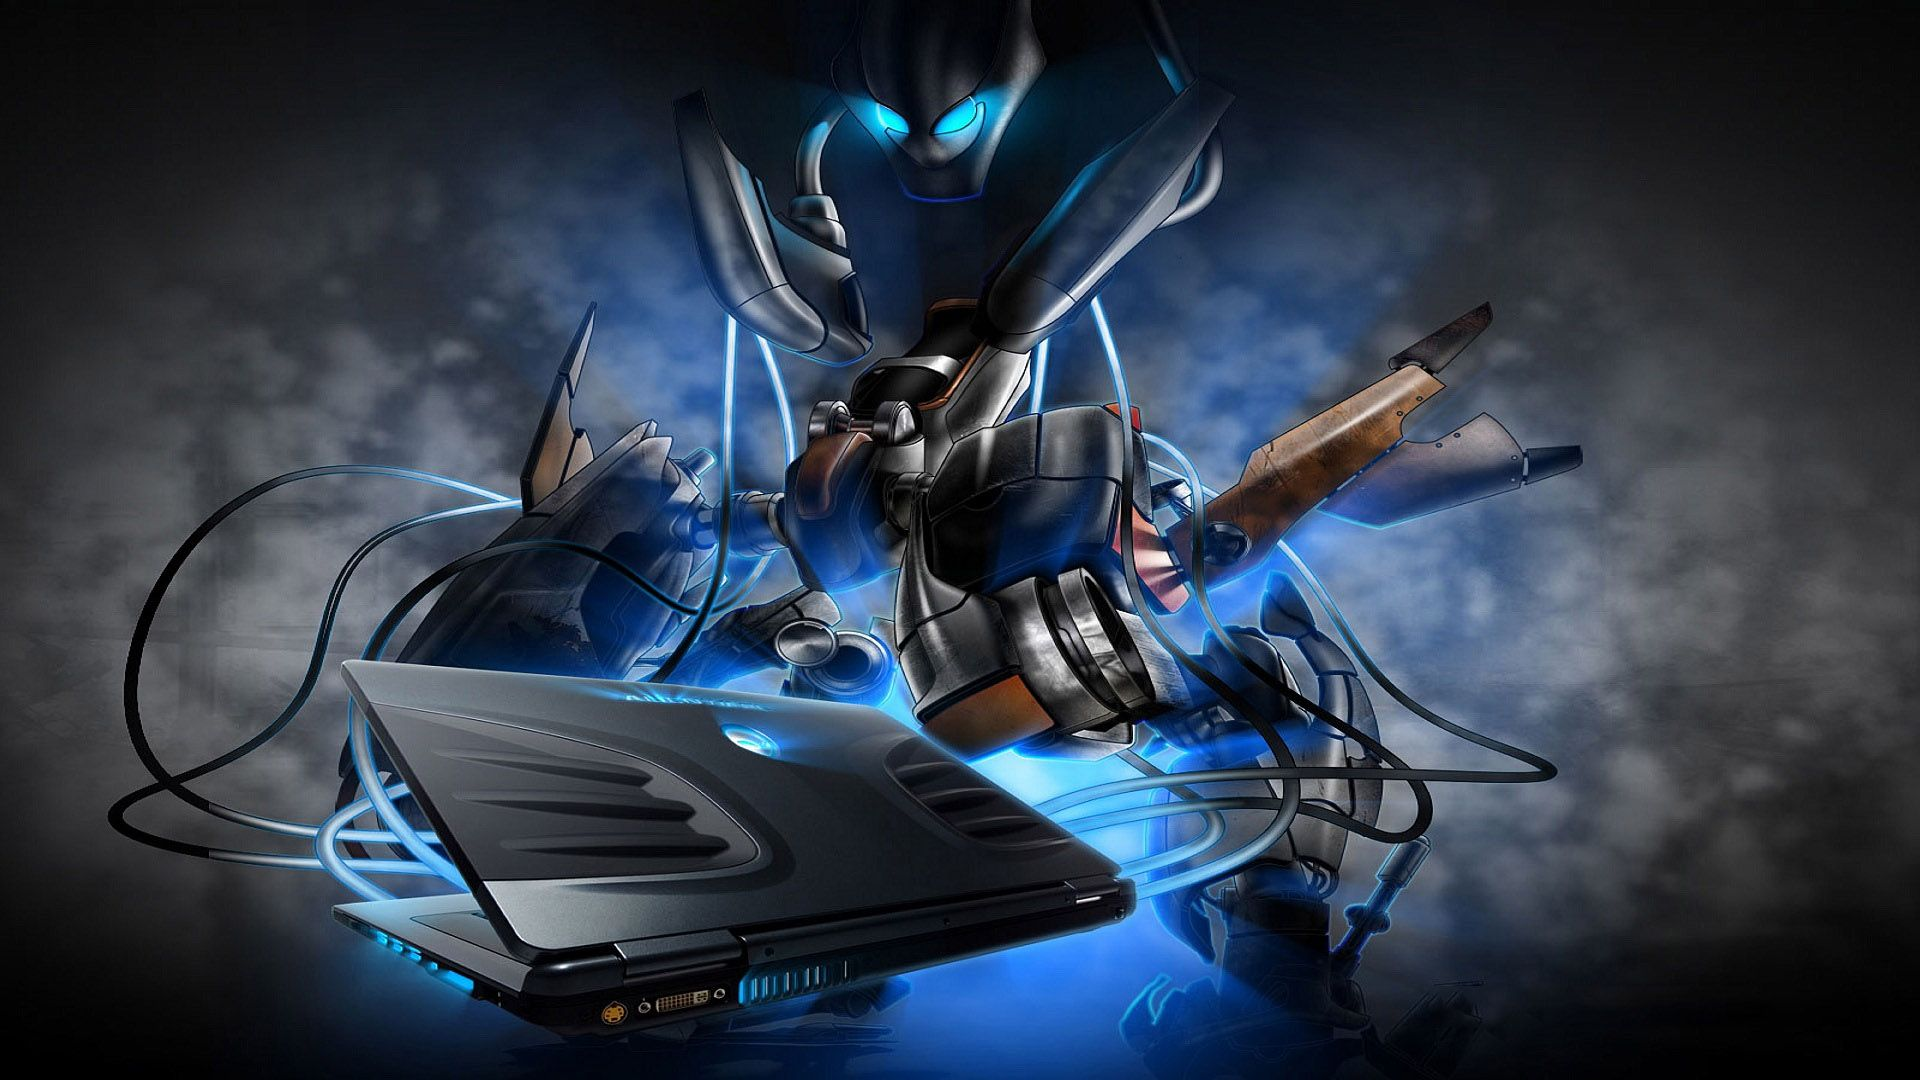 3d Alienware Mech Hd Wallpaper